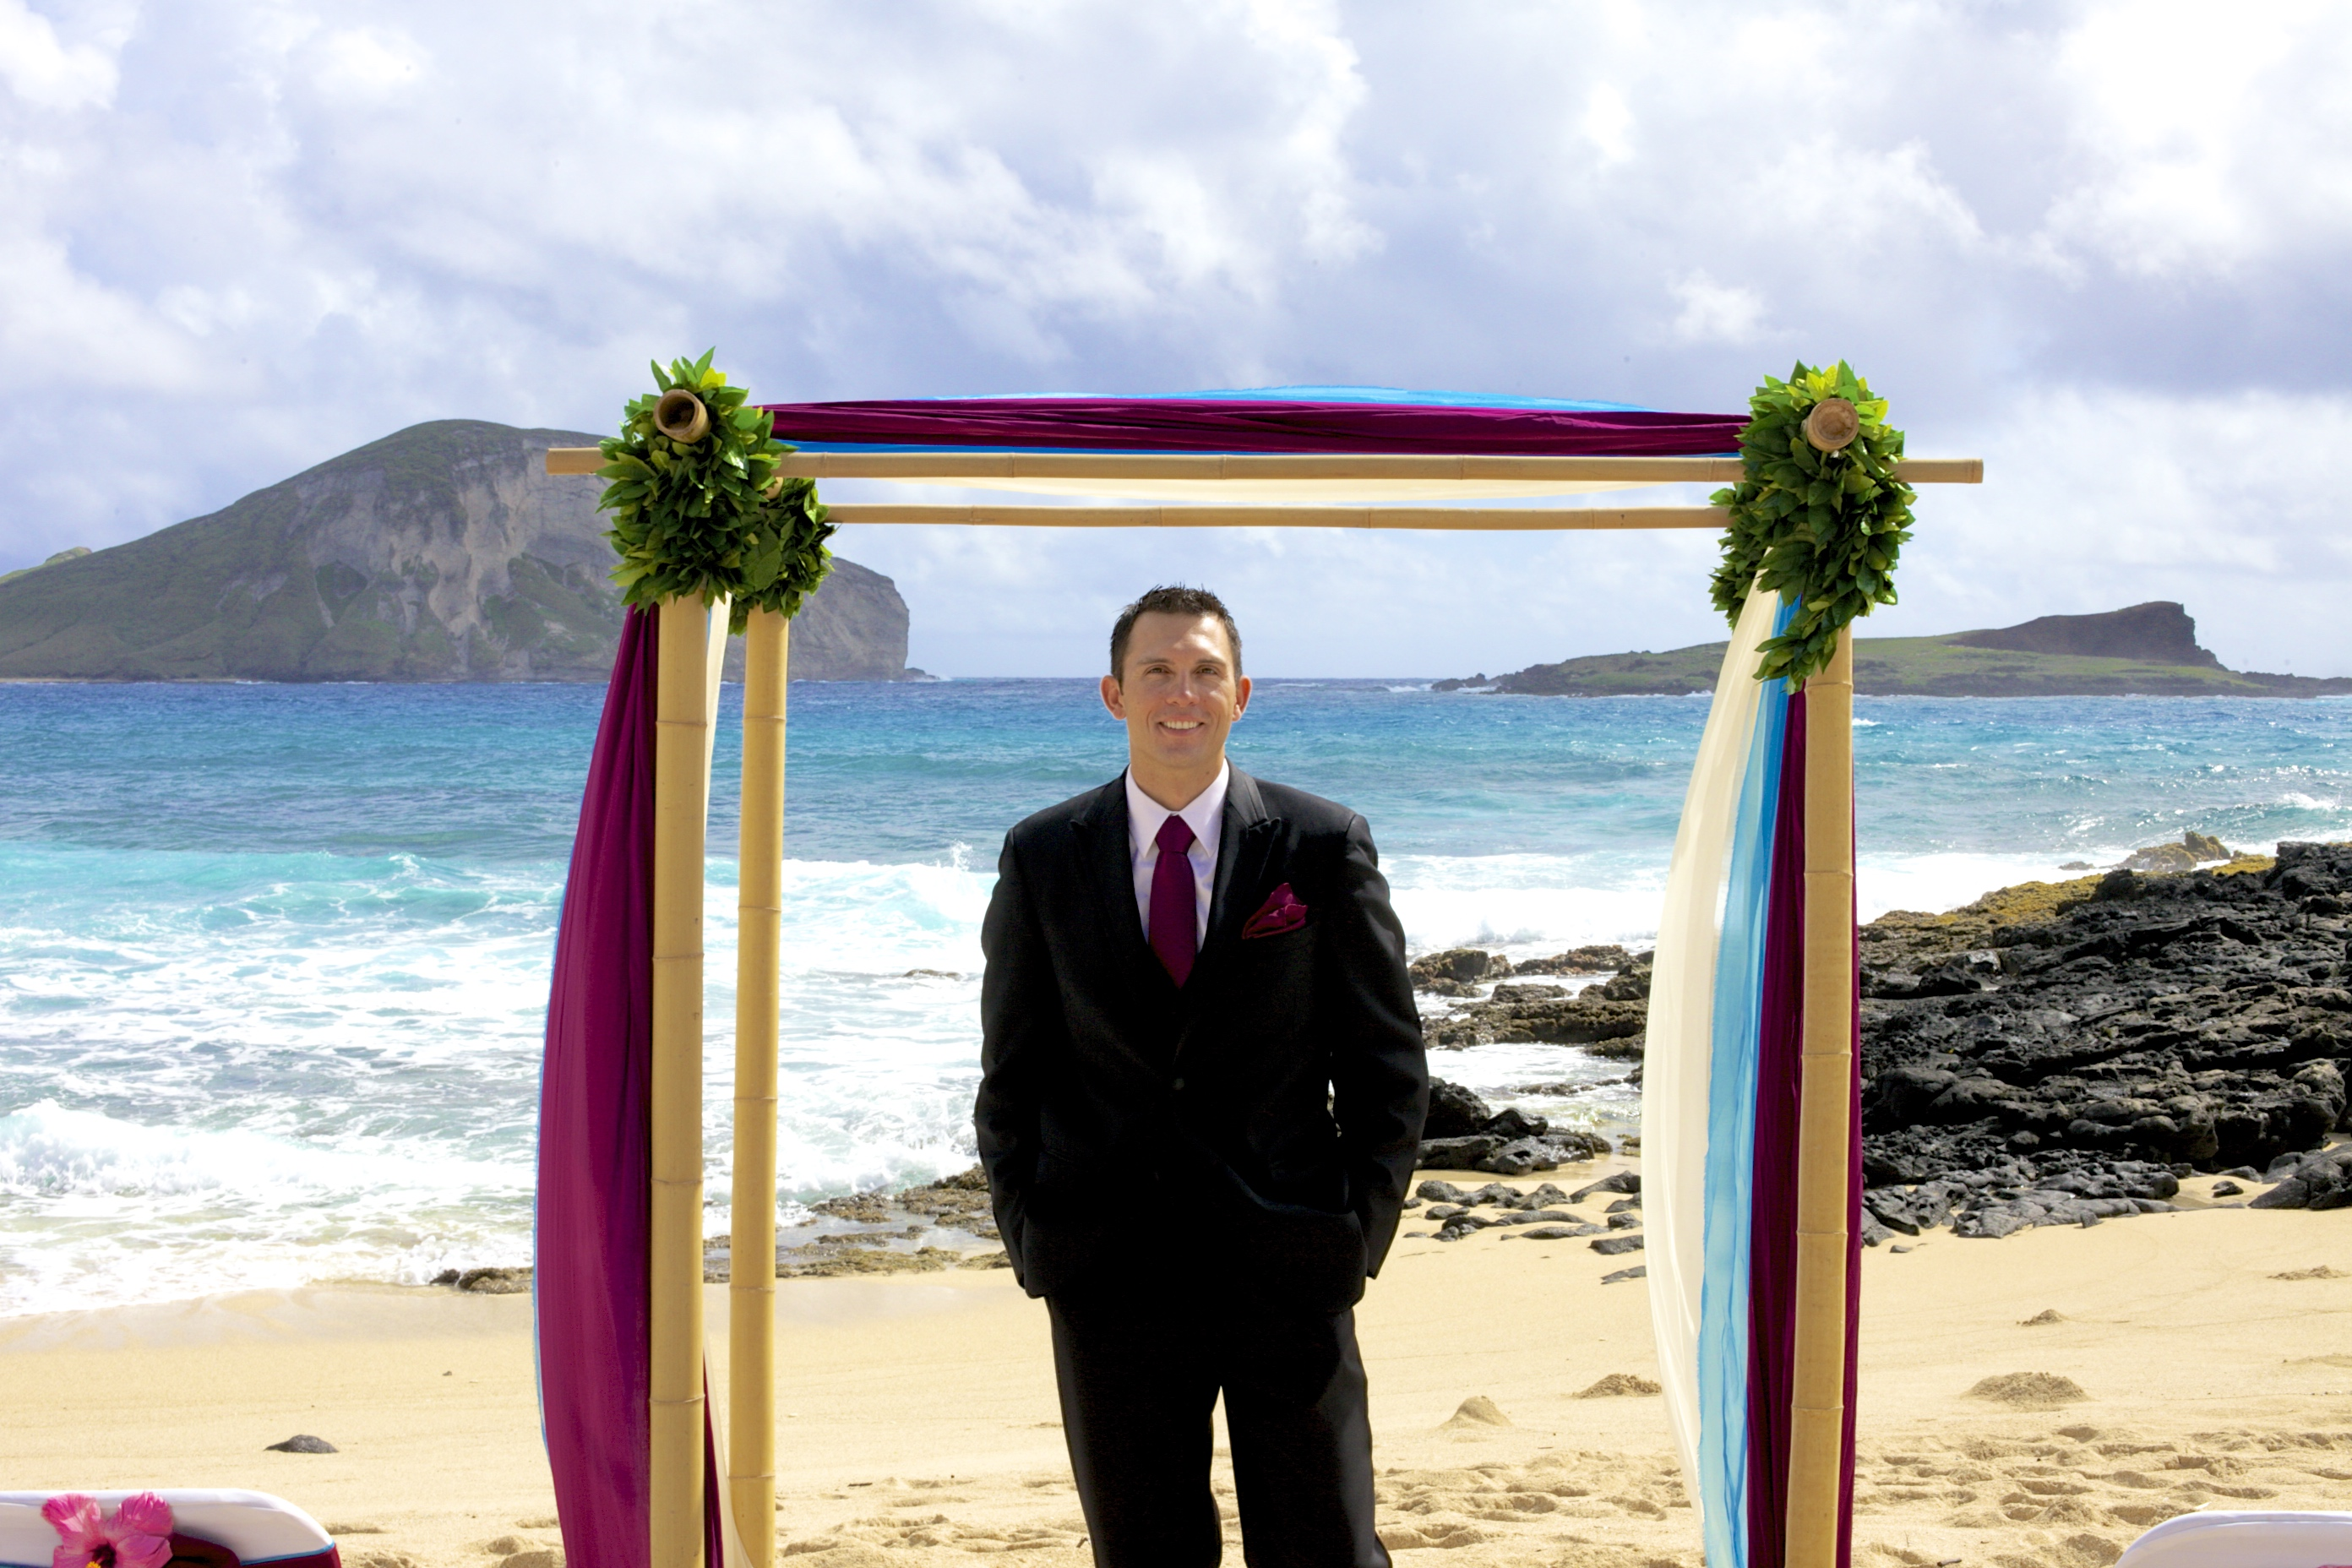 groom standing under the bamboo arch in Hawaii at his beach wedding